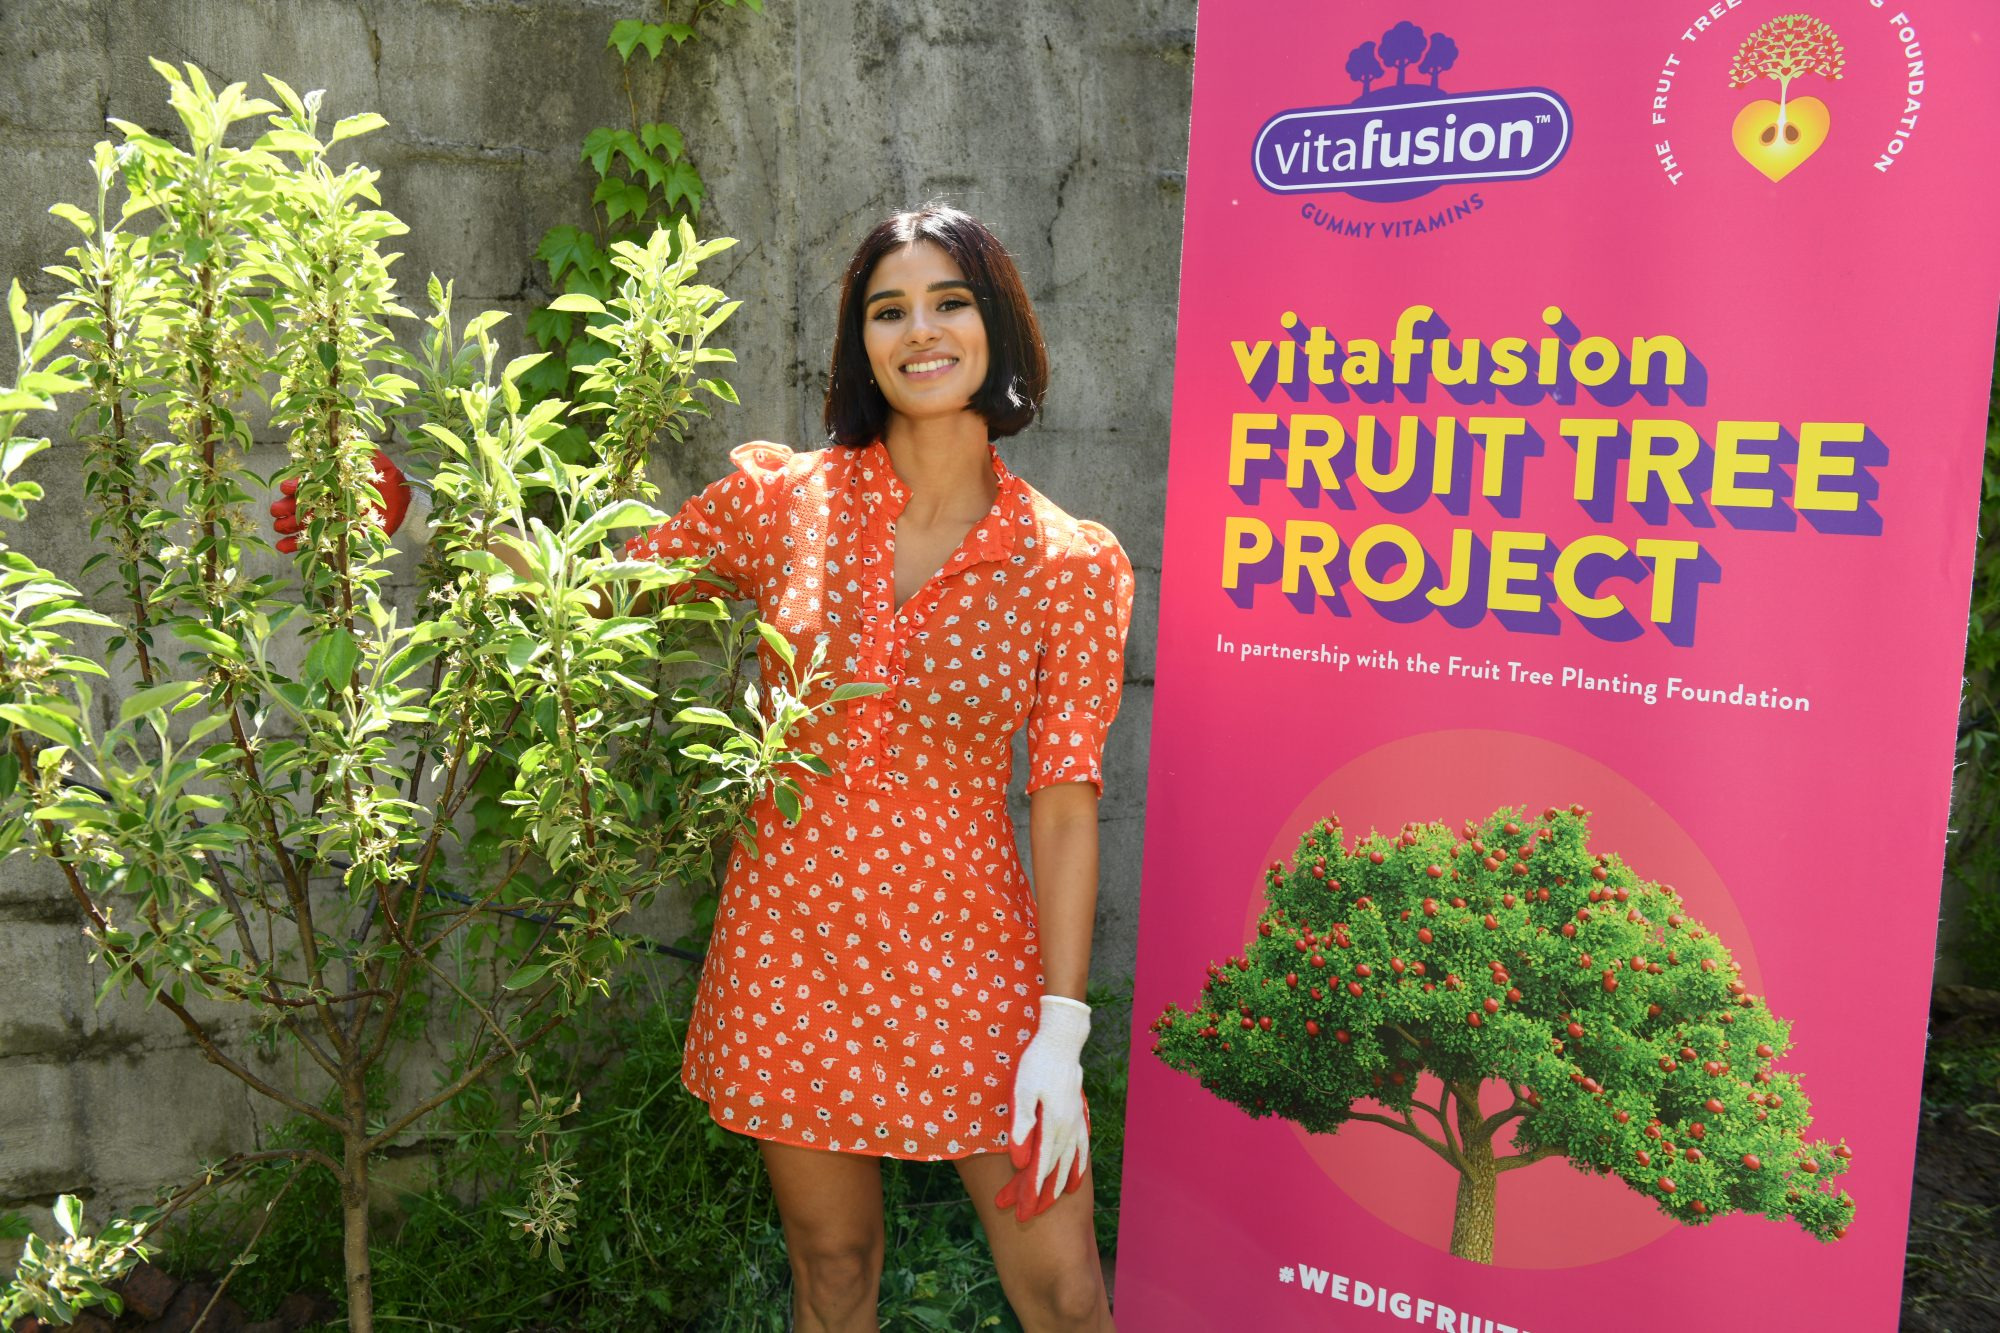 vitafusion™ Fruit Tree Planting Project